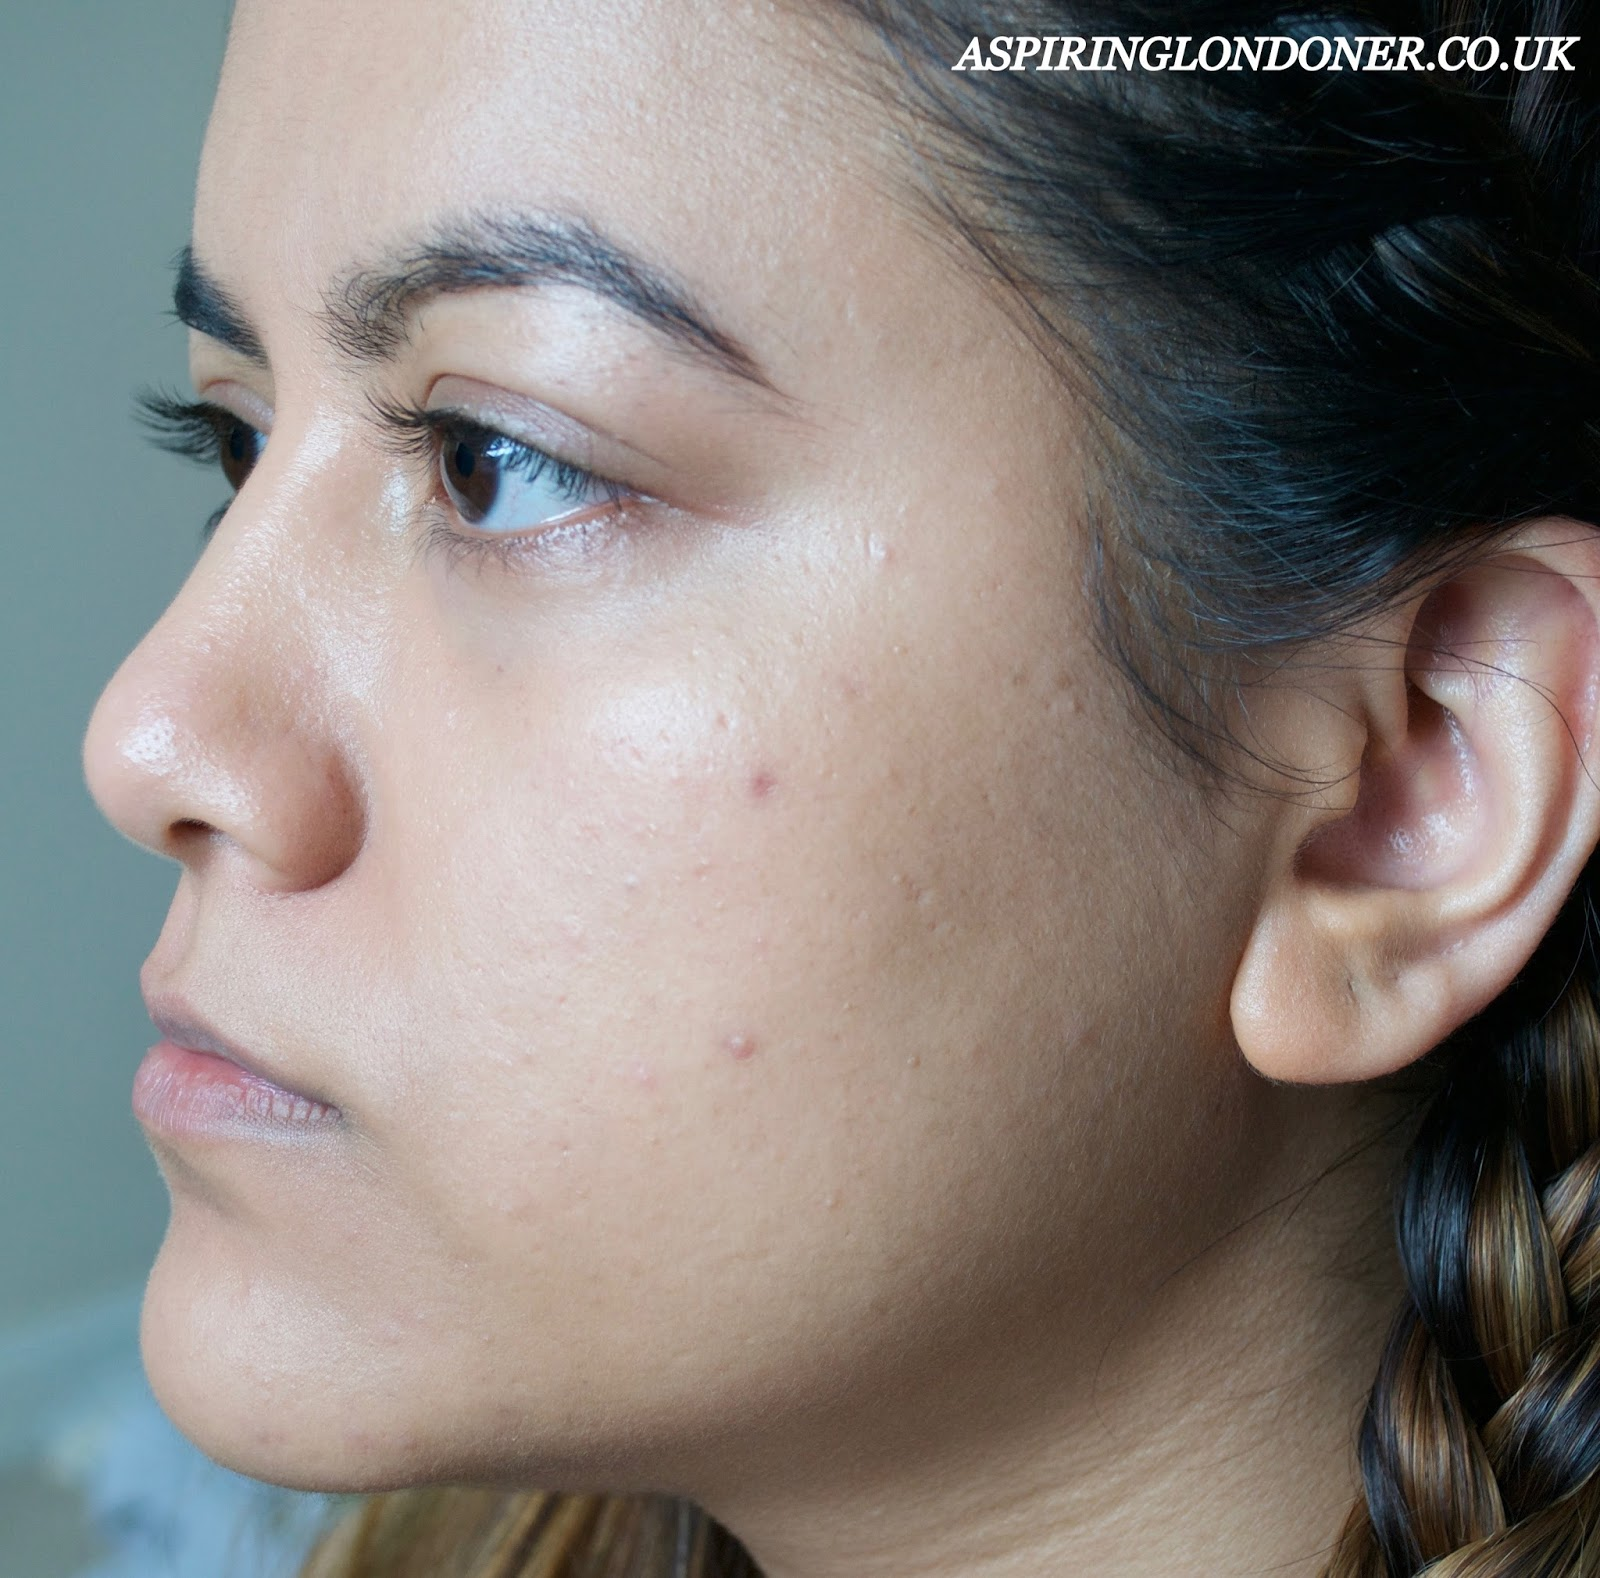 FOUNDATION SHADE MATCH SMASHBOX LIQUID HALO HD FOUNDATION REVIEW SWATCH - ASPIRING LONDONER